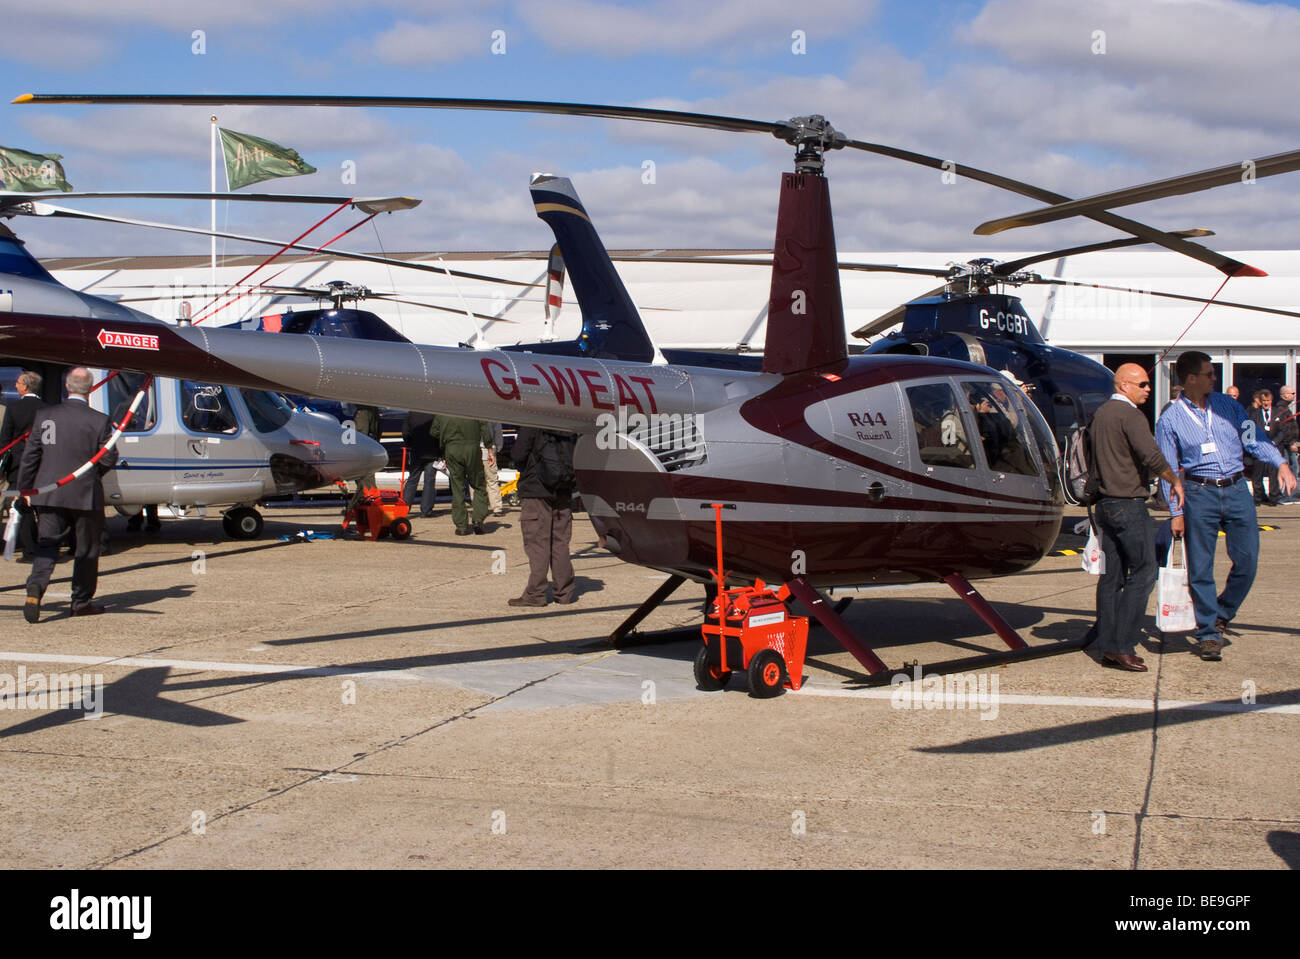 Robinson R44 Raven II Helicopter G-WEAT at Helitech Trade Show ... on enstrom helicopter, ocean water from helicopter, robinson helicopter, r66 helicopter, historical helicopter, world's largest russian helicopter, kiro helicopter, r12 helicopter, woman jumping from helicopter, bell helicopter,